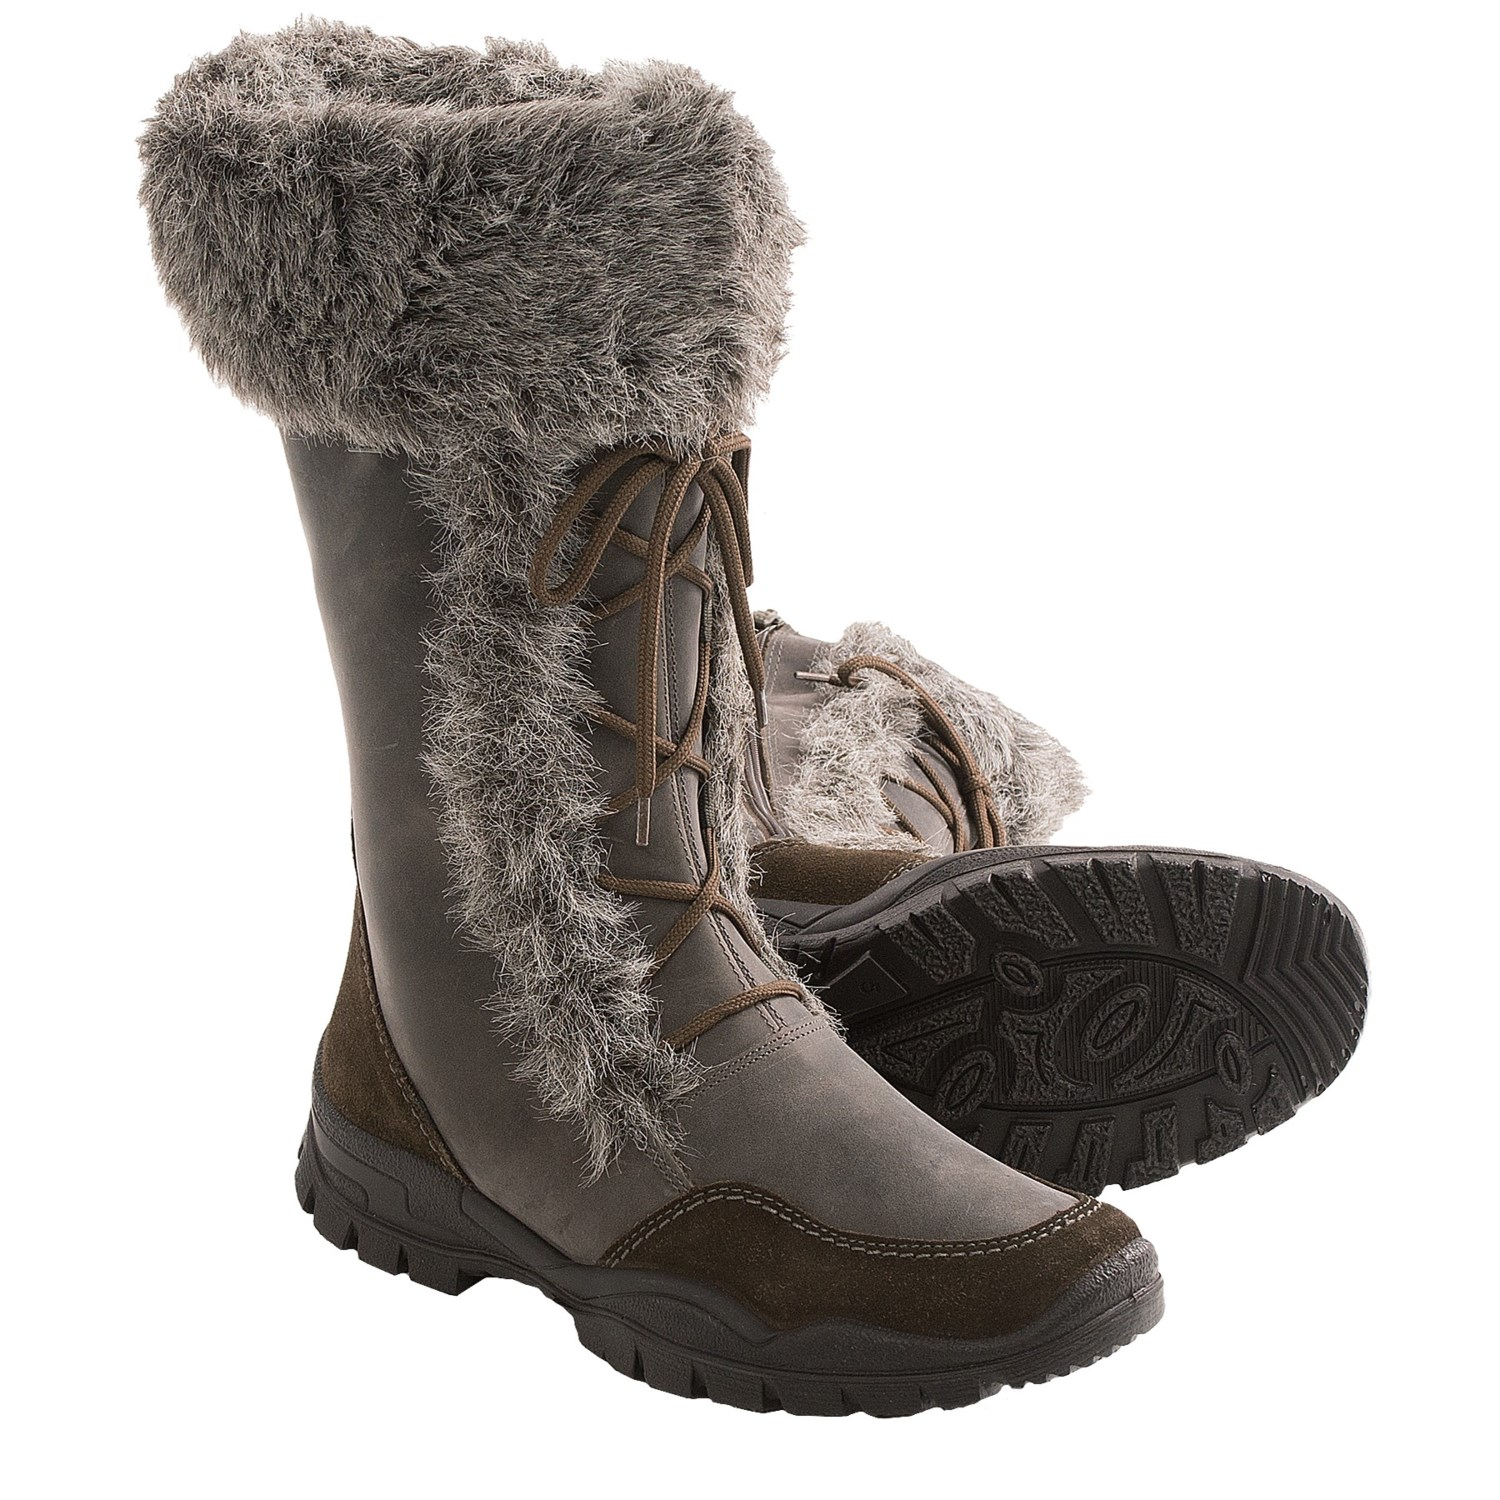 Extra Wide Winter Boots For Womens | NATIONAL SHERIFFS' ASSOCIATION